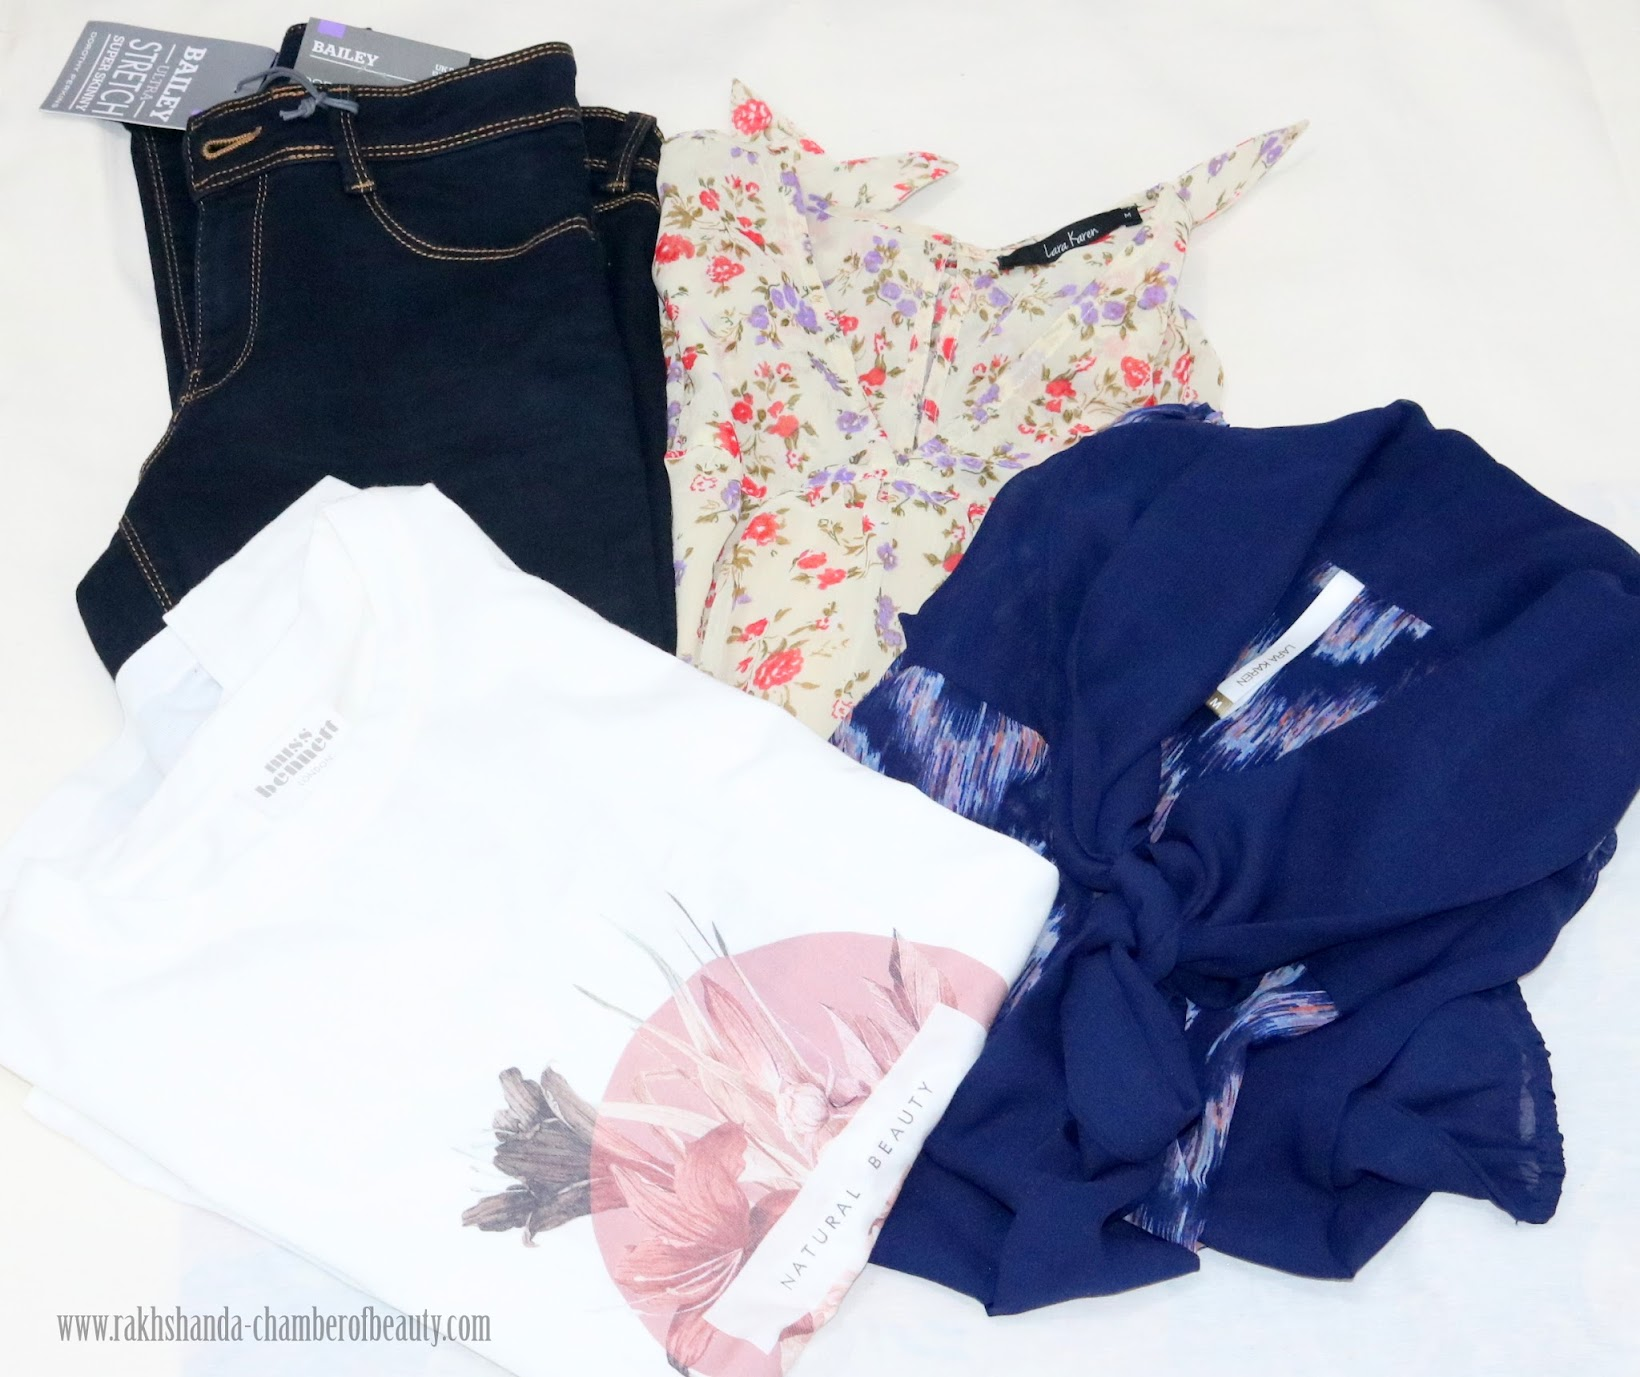 Jabong.com shopping experience, clothing haul from Jabong.com